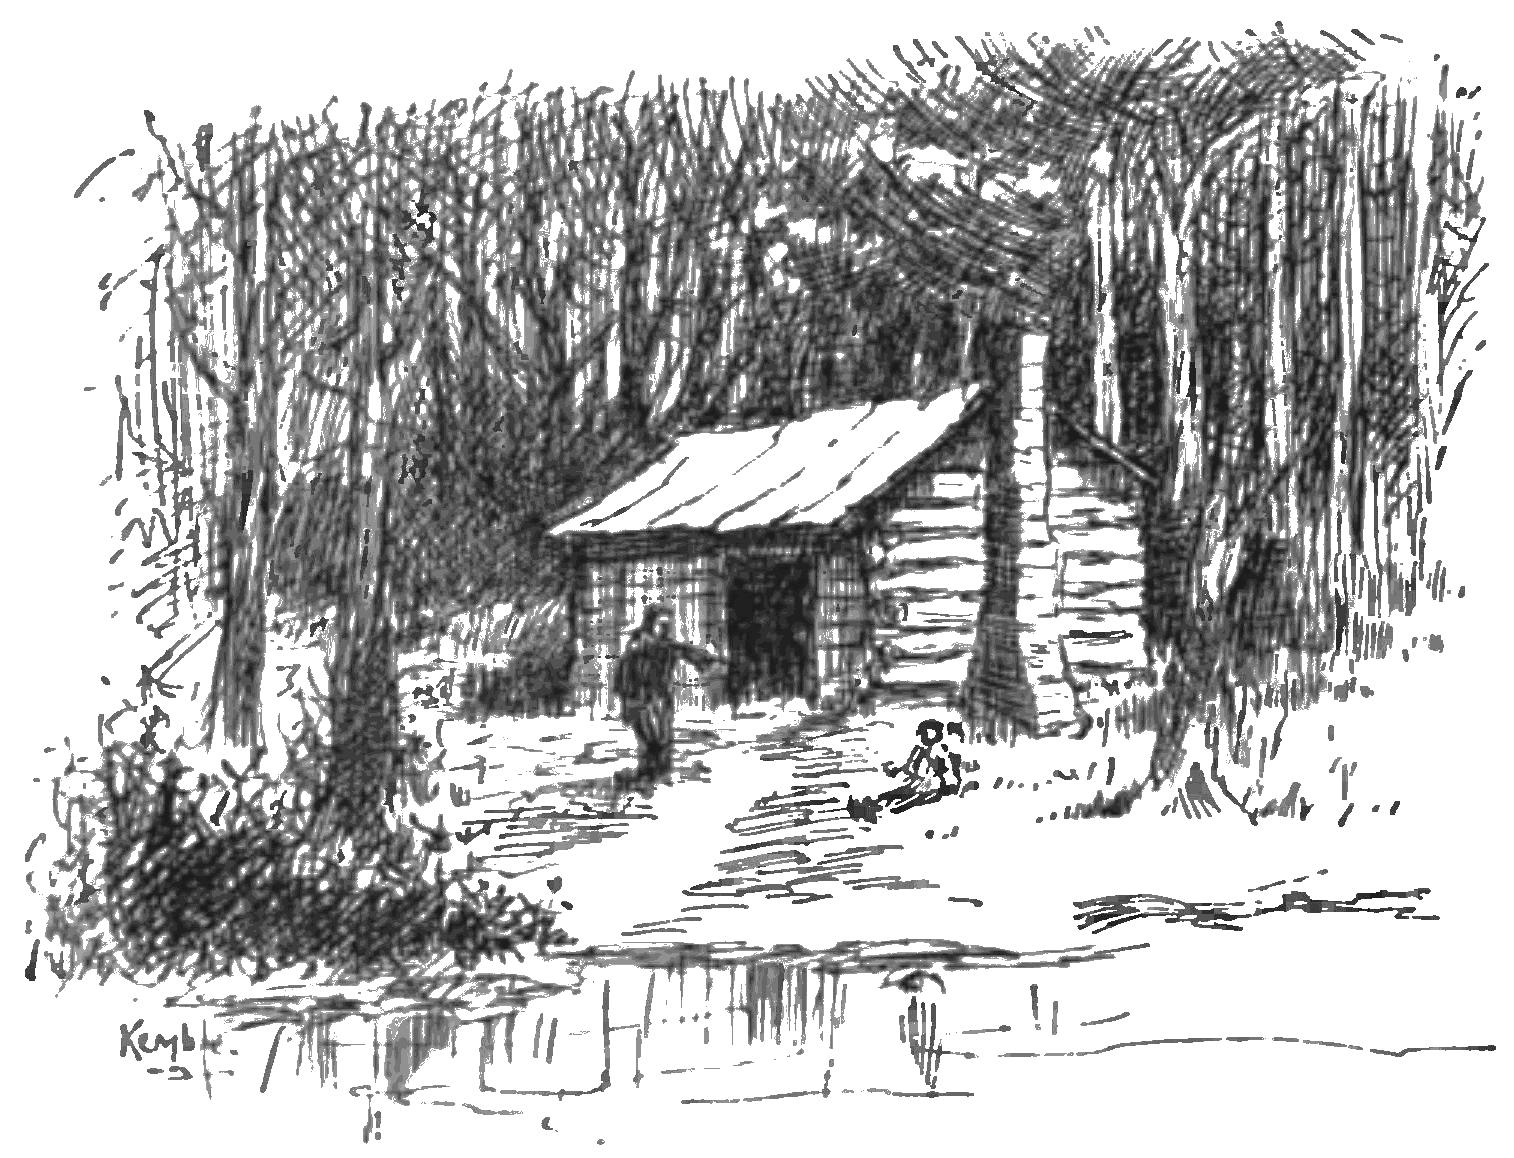 Shack drawing sketch. File adventures of huckleberry